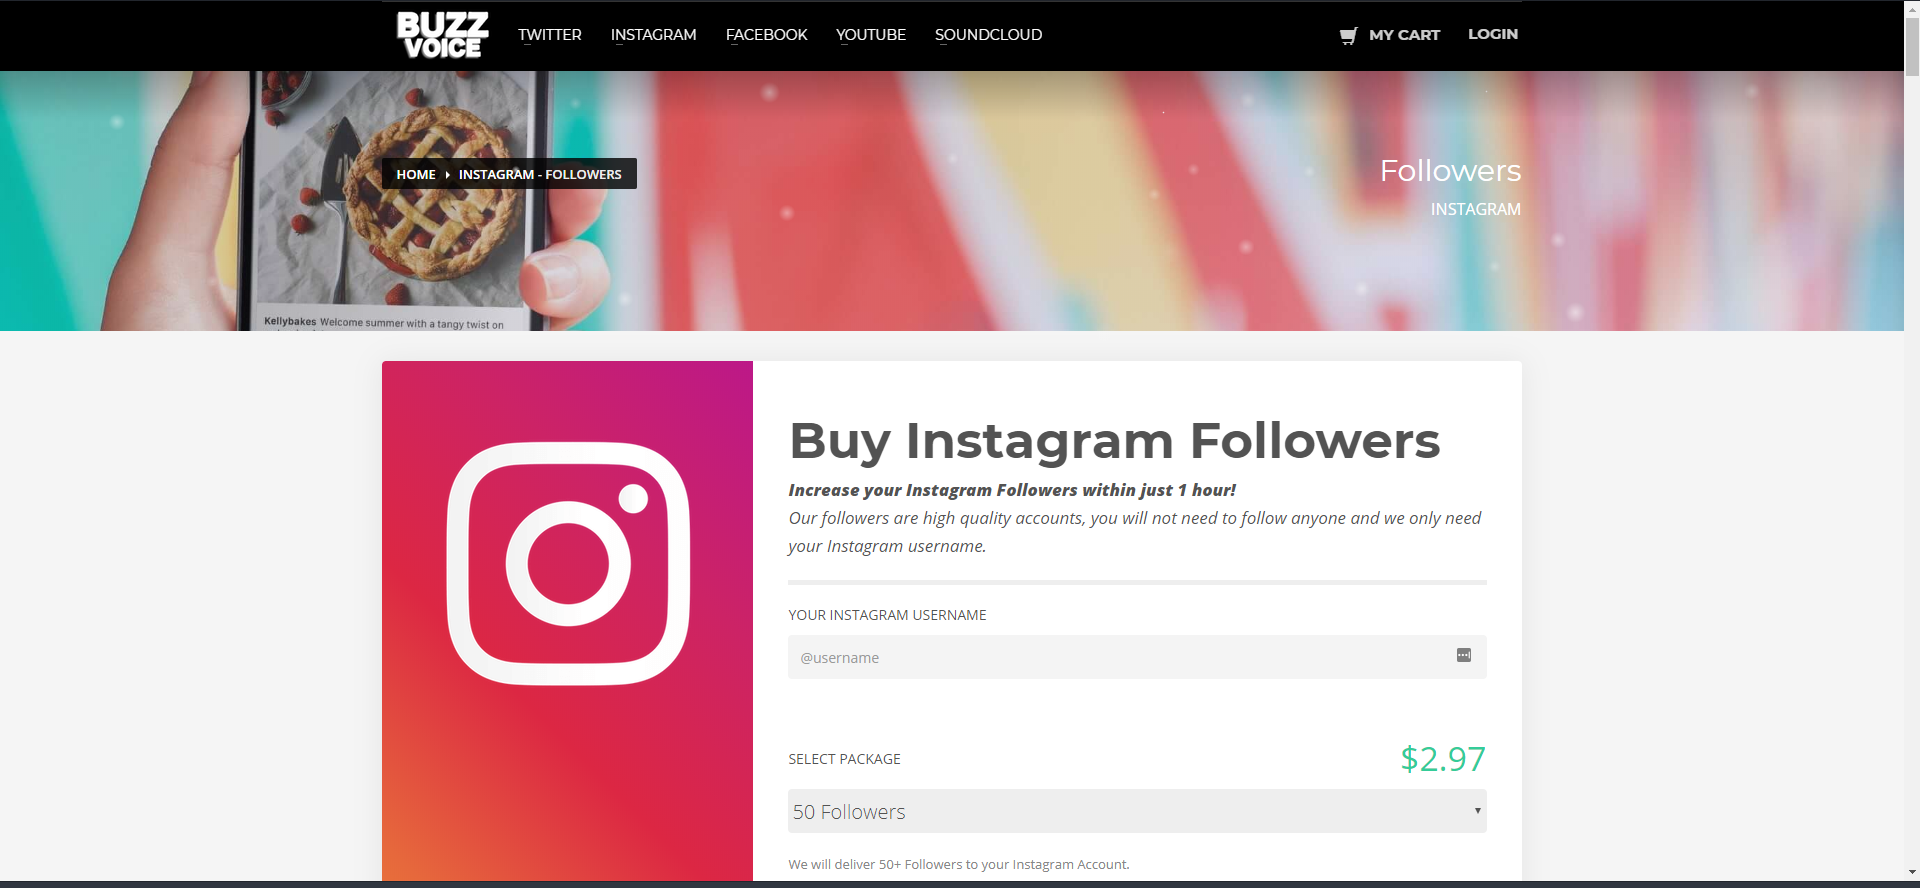 BuzzVoice's page for increasing Instagram followers